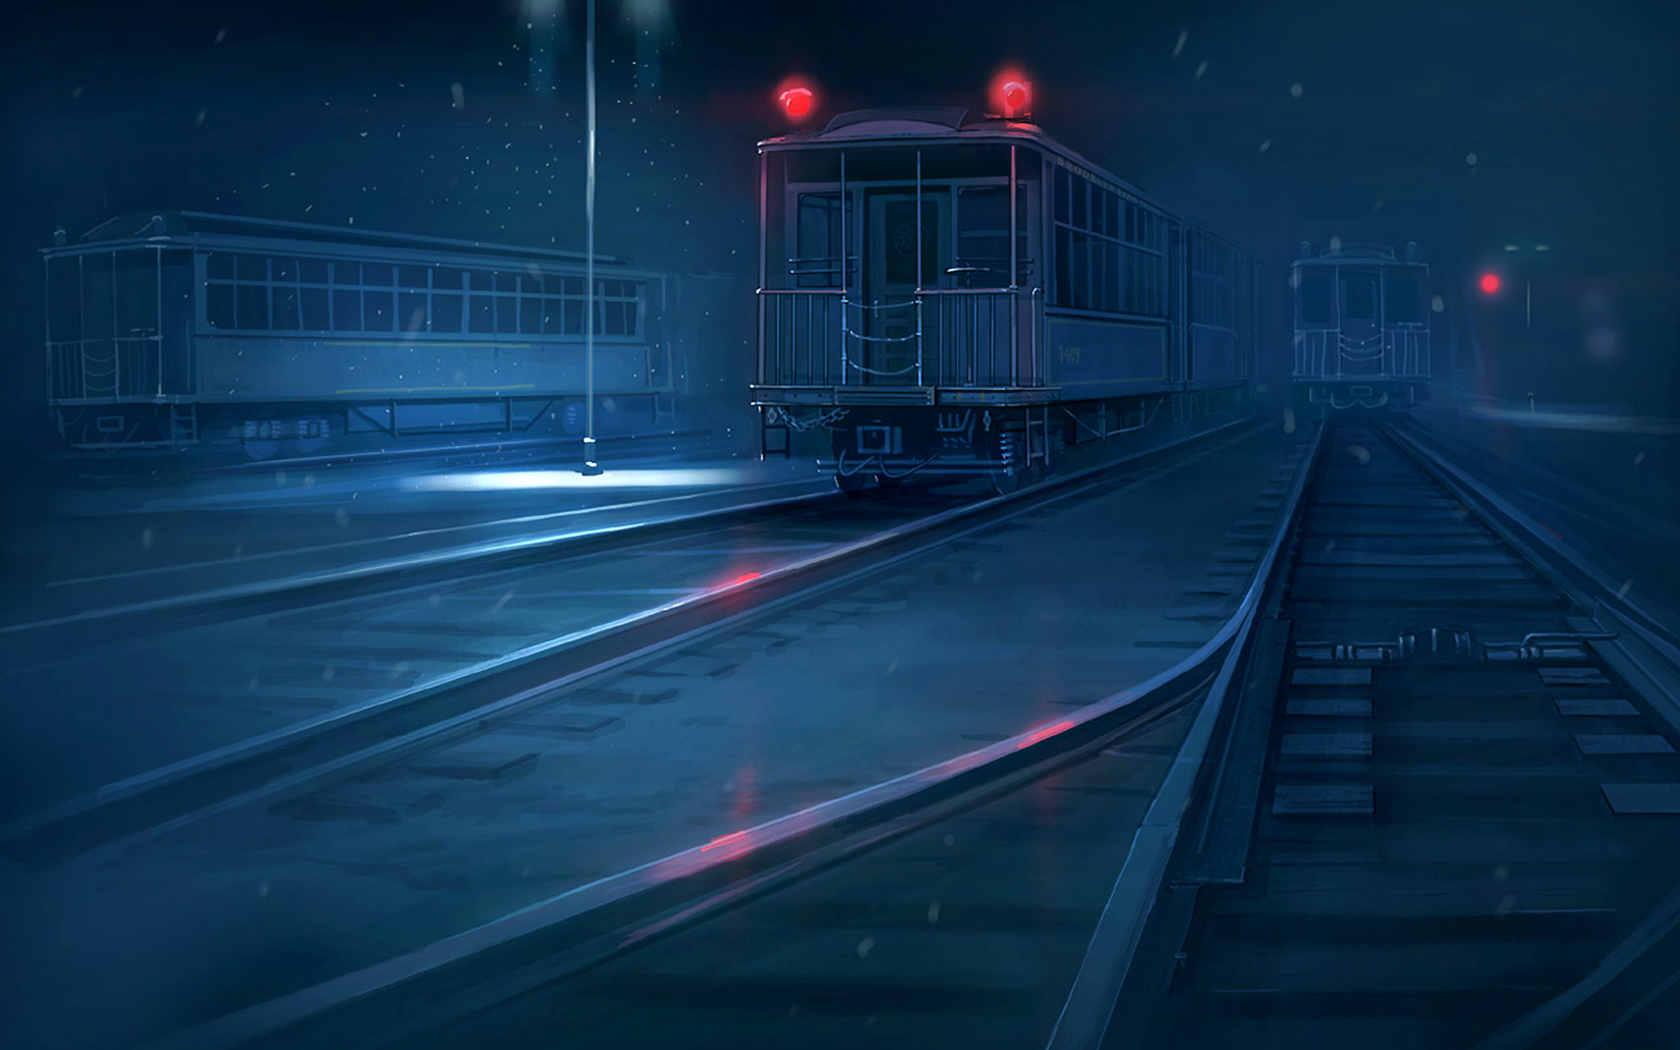 night trains makoto shinkai HD Wallpaper